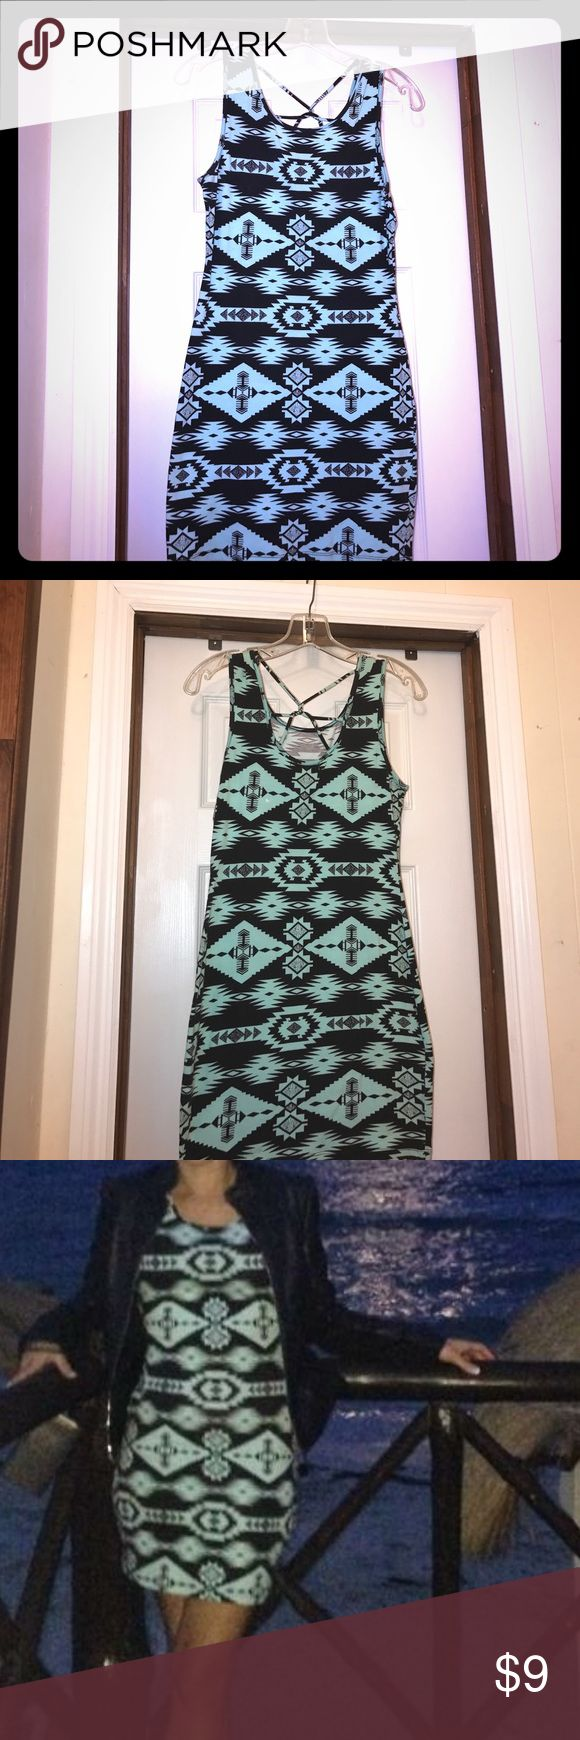 Aztec print dress. Super cute, size medium from Papaya. 95% cotton. 5% spandex. No holes, rips or stains. Gently used condition. Papaya Dresses Mini